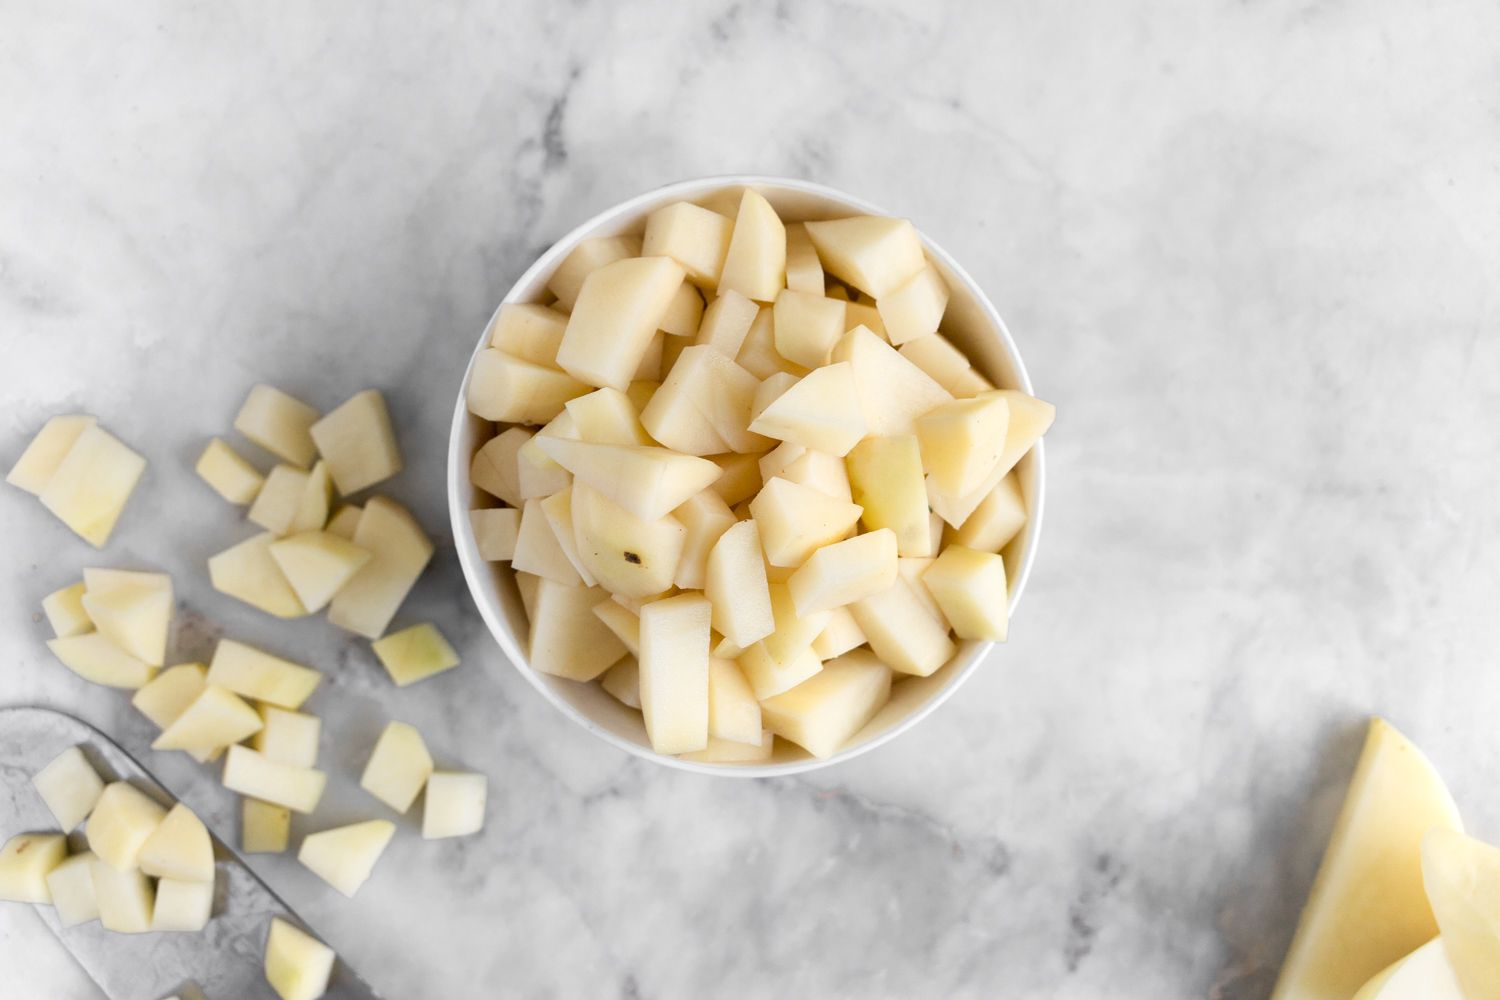 peeled and cubed potatoes in a bowl